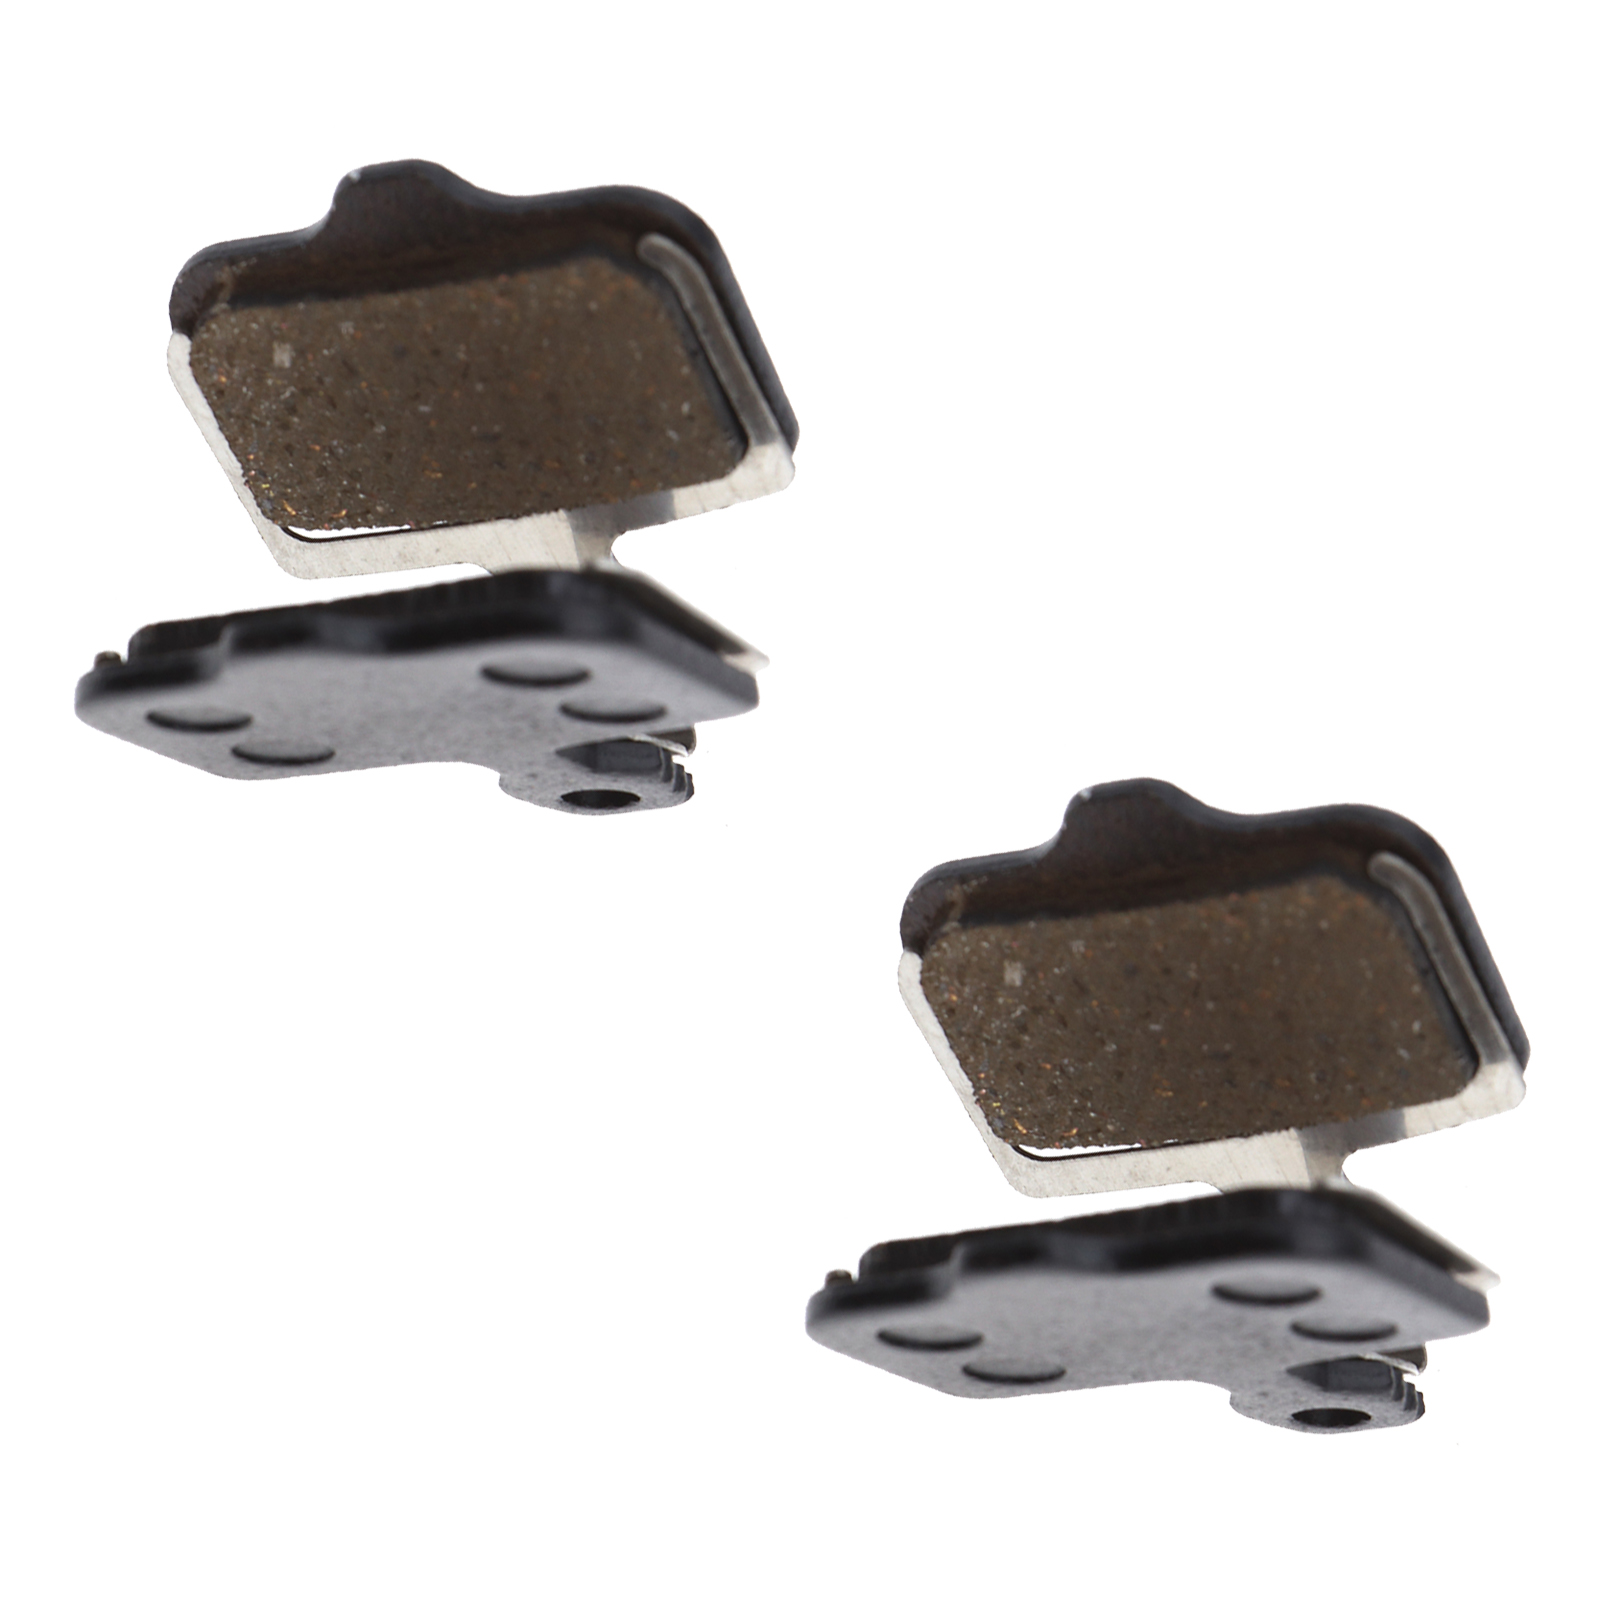 FF1A High Quality Durable 5 Pairs Bicycle Bike Disc Brake Pads For Avid Elixir S